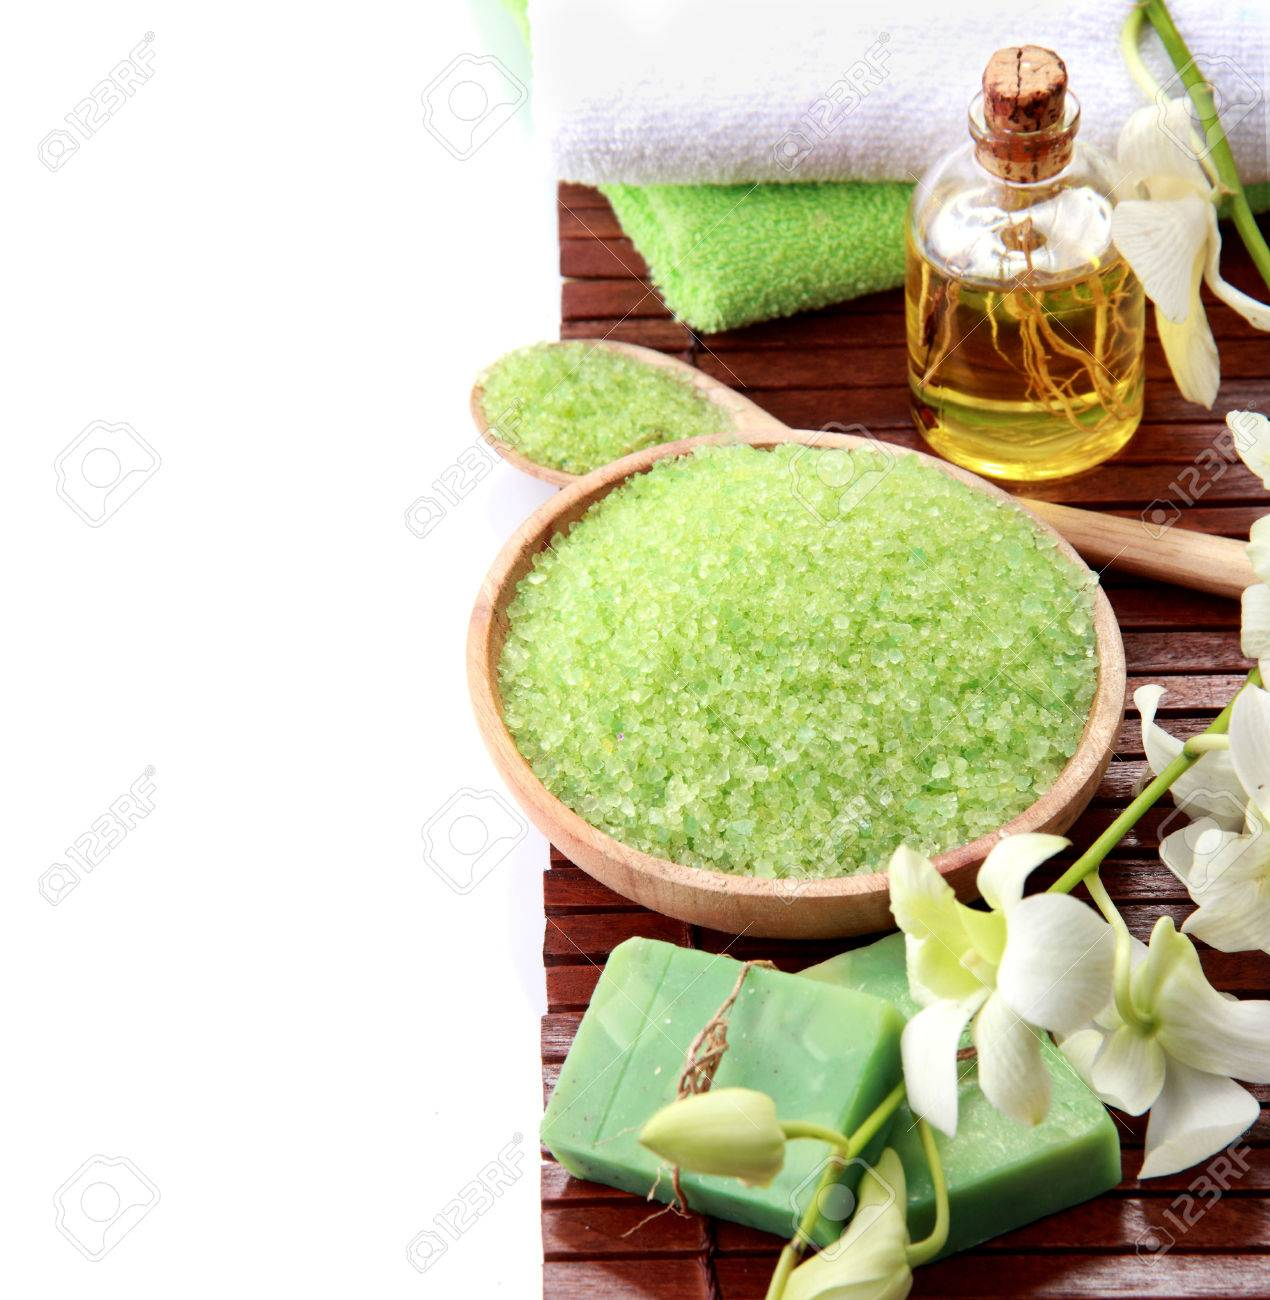 green spa isolated on white background with copyspace - 25152809